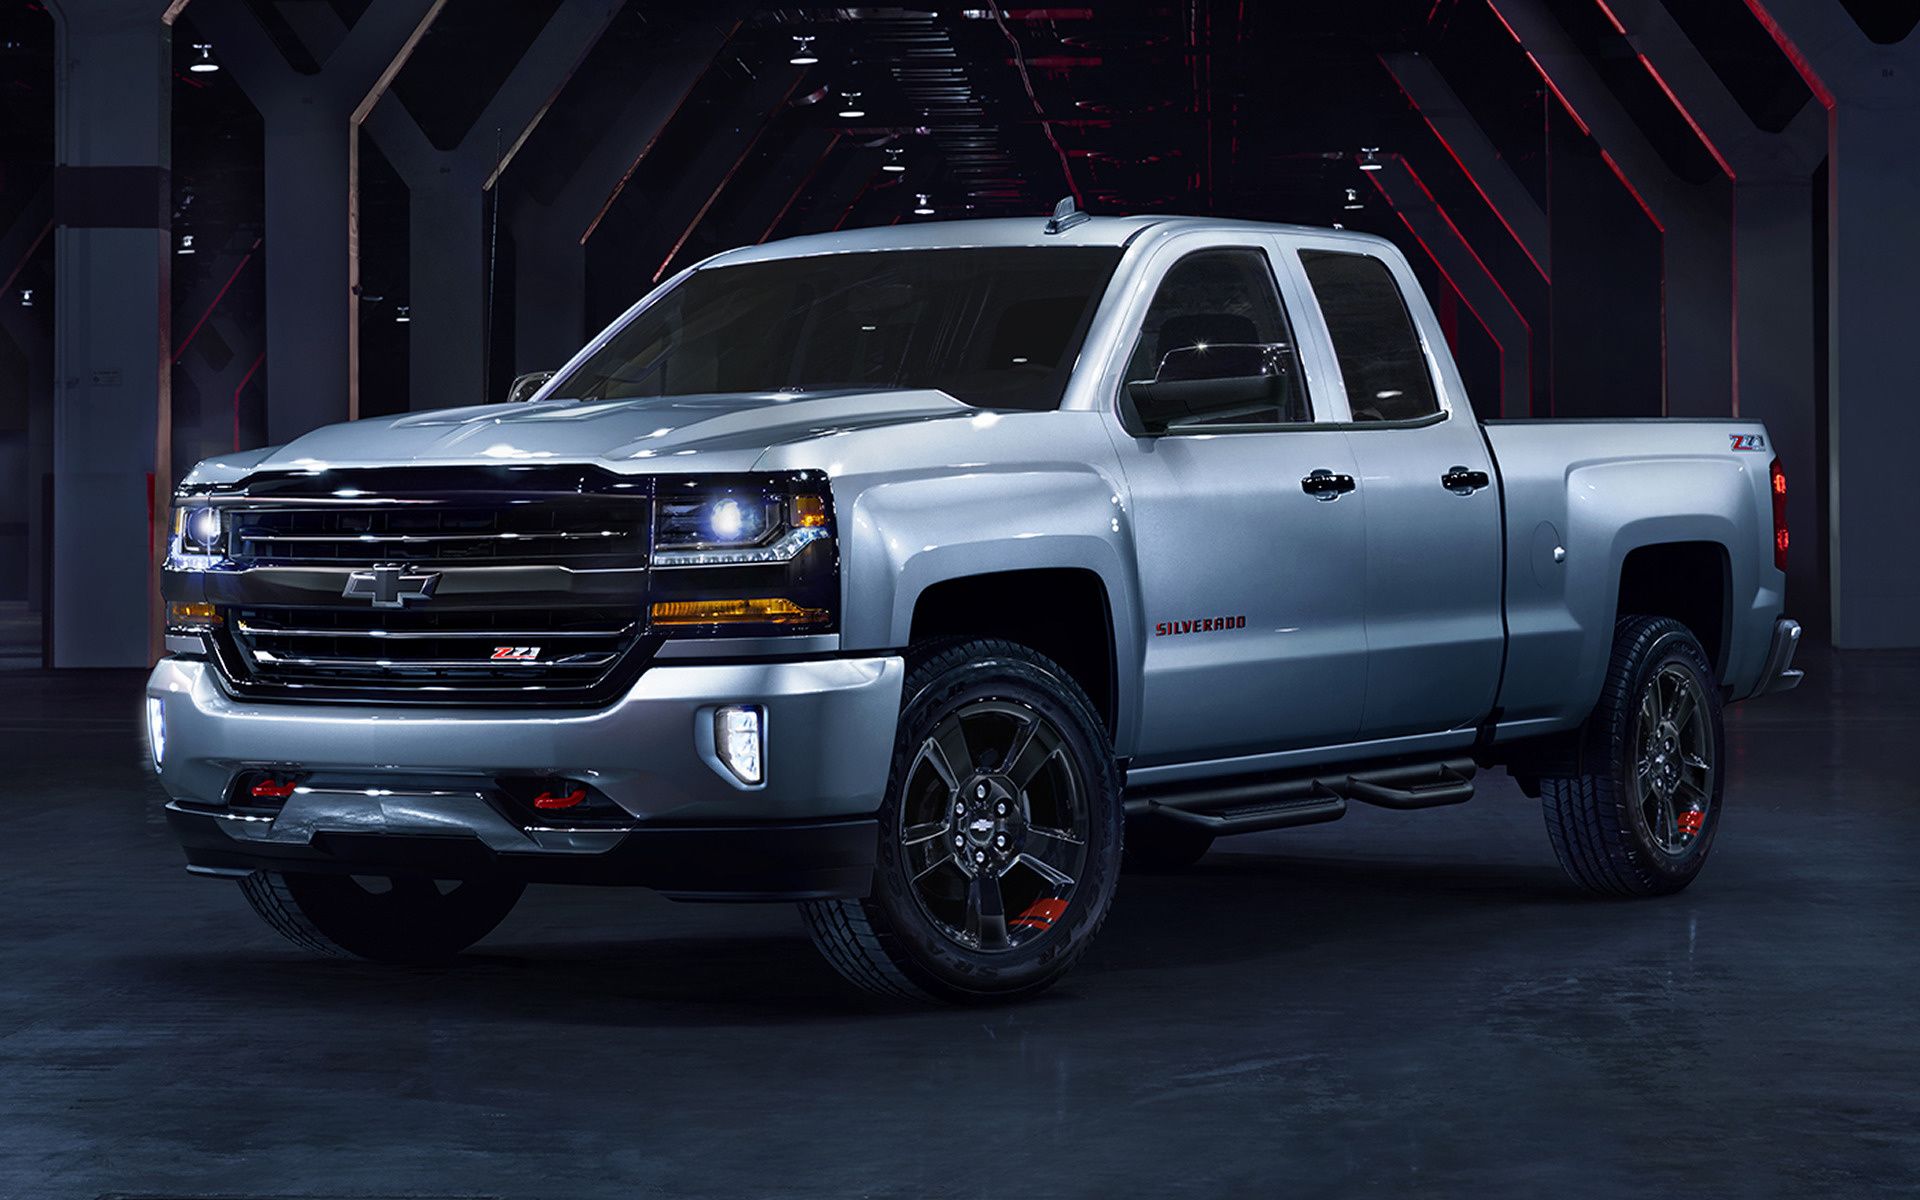 Chevrolet Silverado Z71 Redline Crew Cab (2017) Wallpapers ...